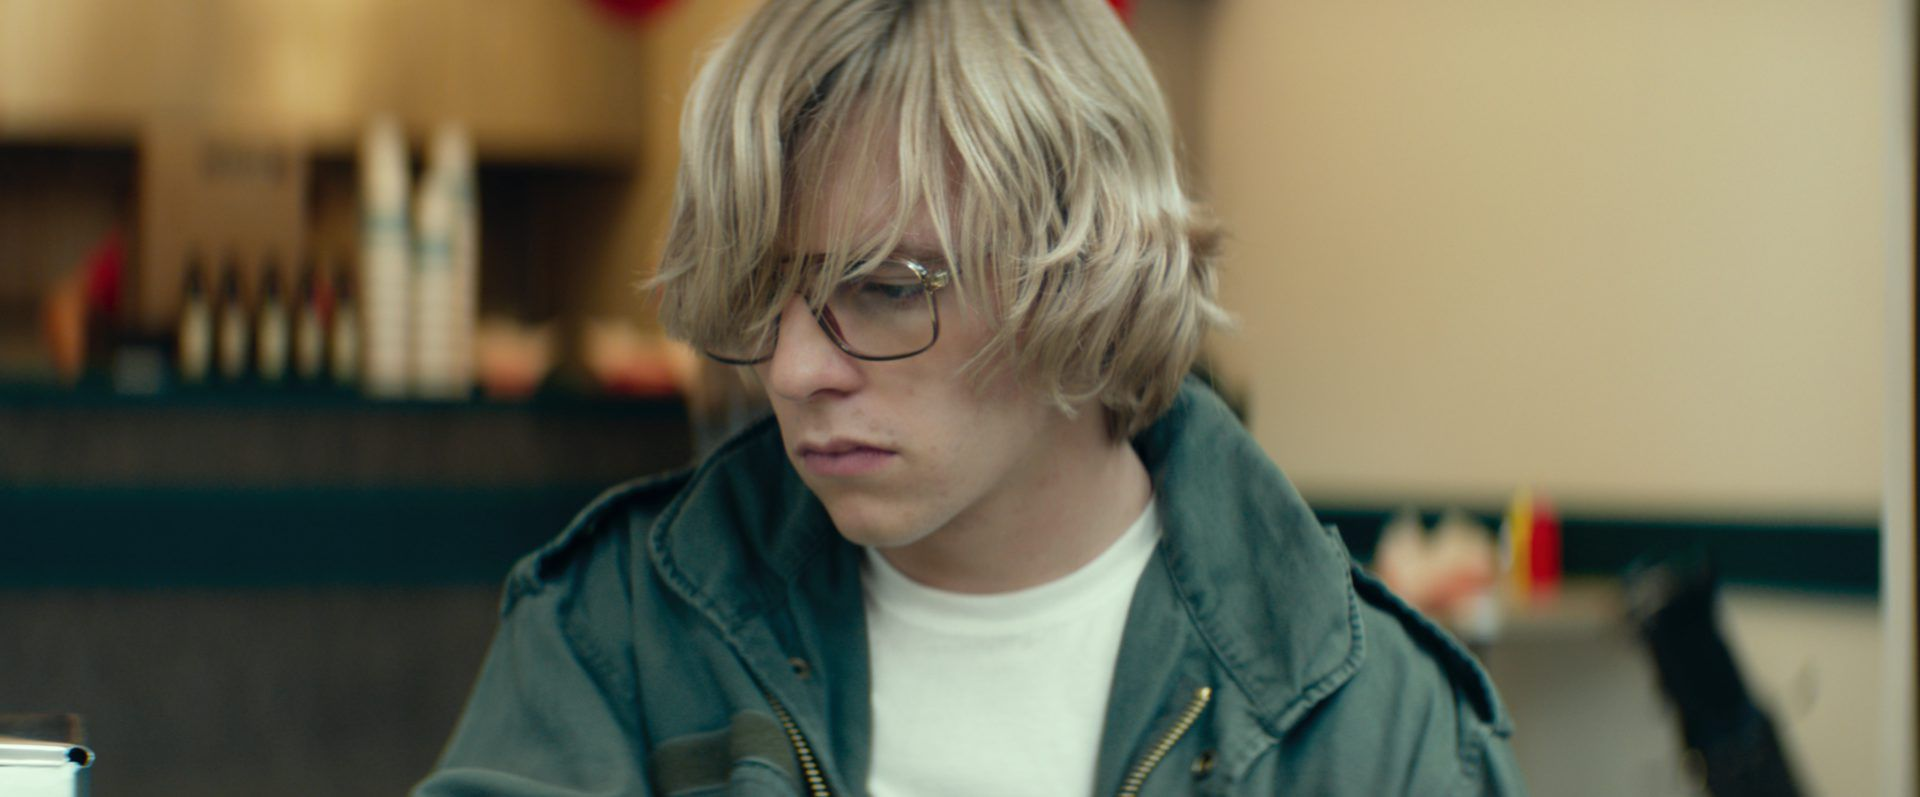 my friend dahmer russ lynch